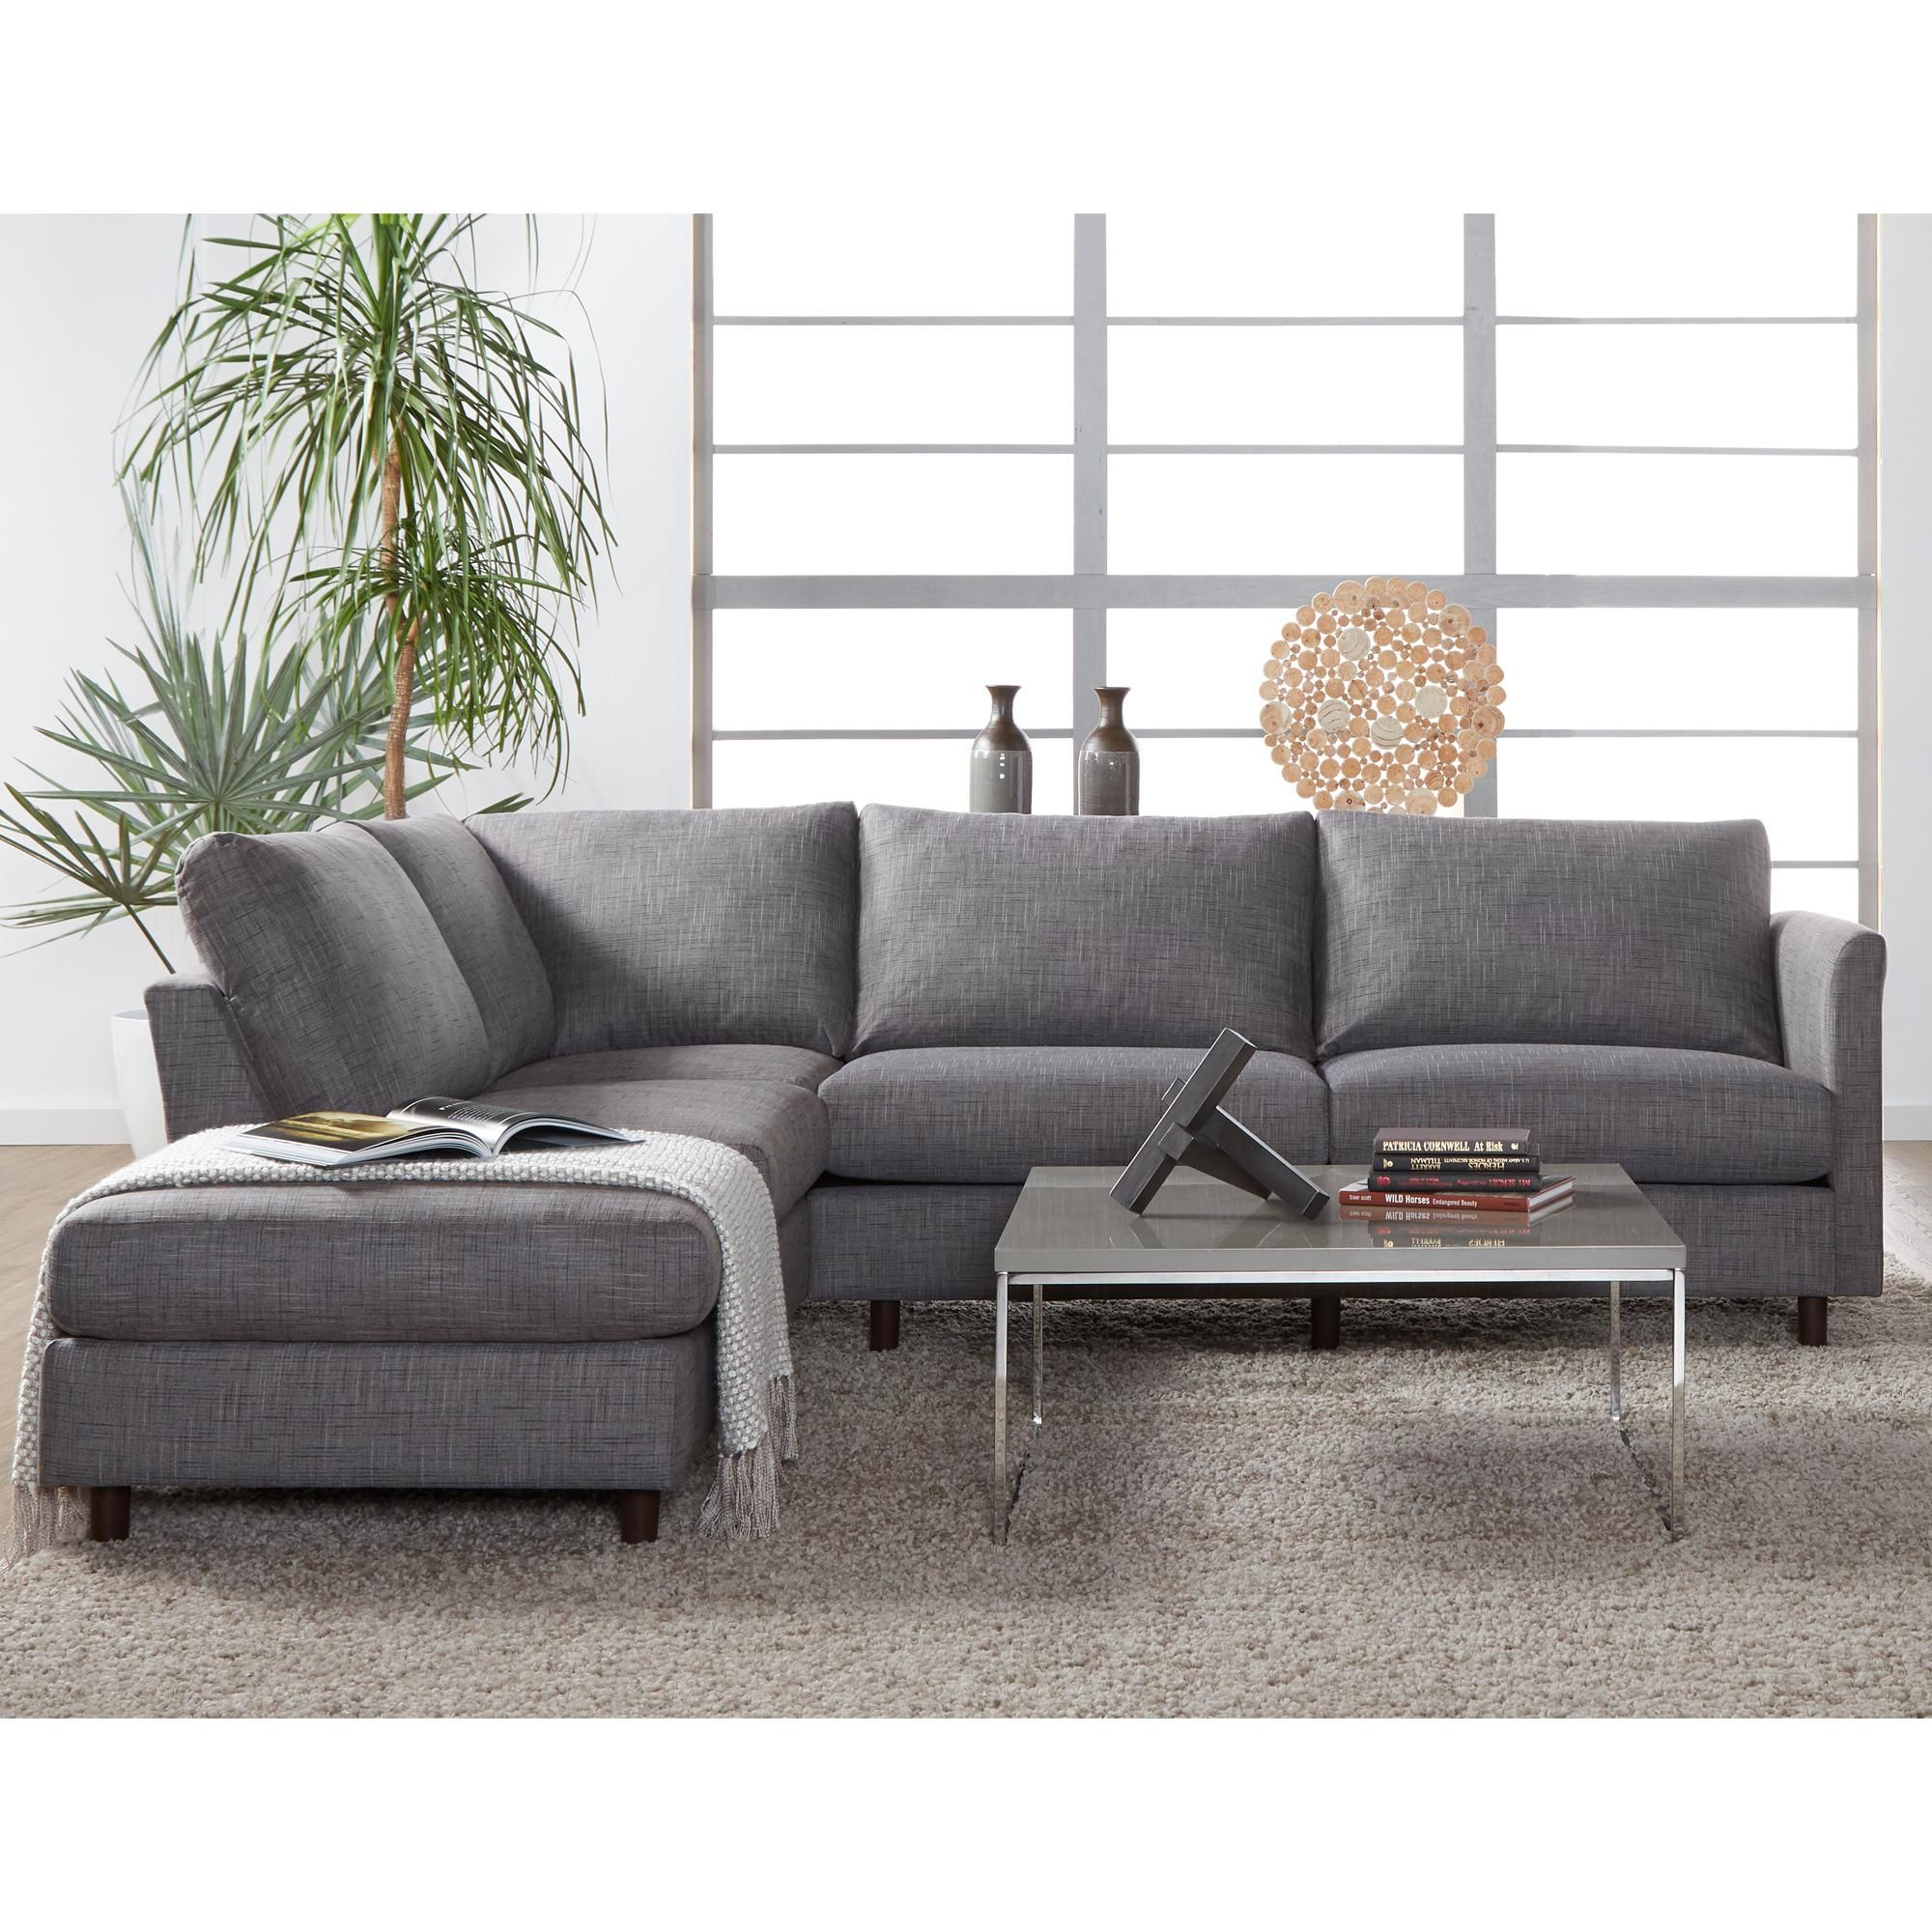 Hughes Furniture Hathaway 2 Piece Sectional In Briar Nebraska Furniture Mart Discount Living Room Furniture Furniture Sectional Sofa Couch